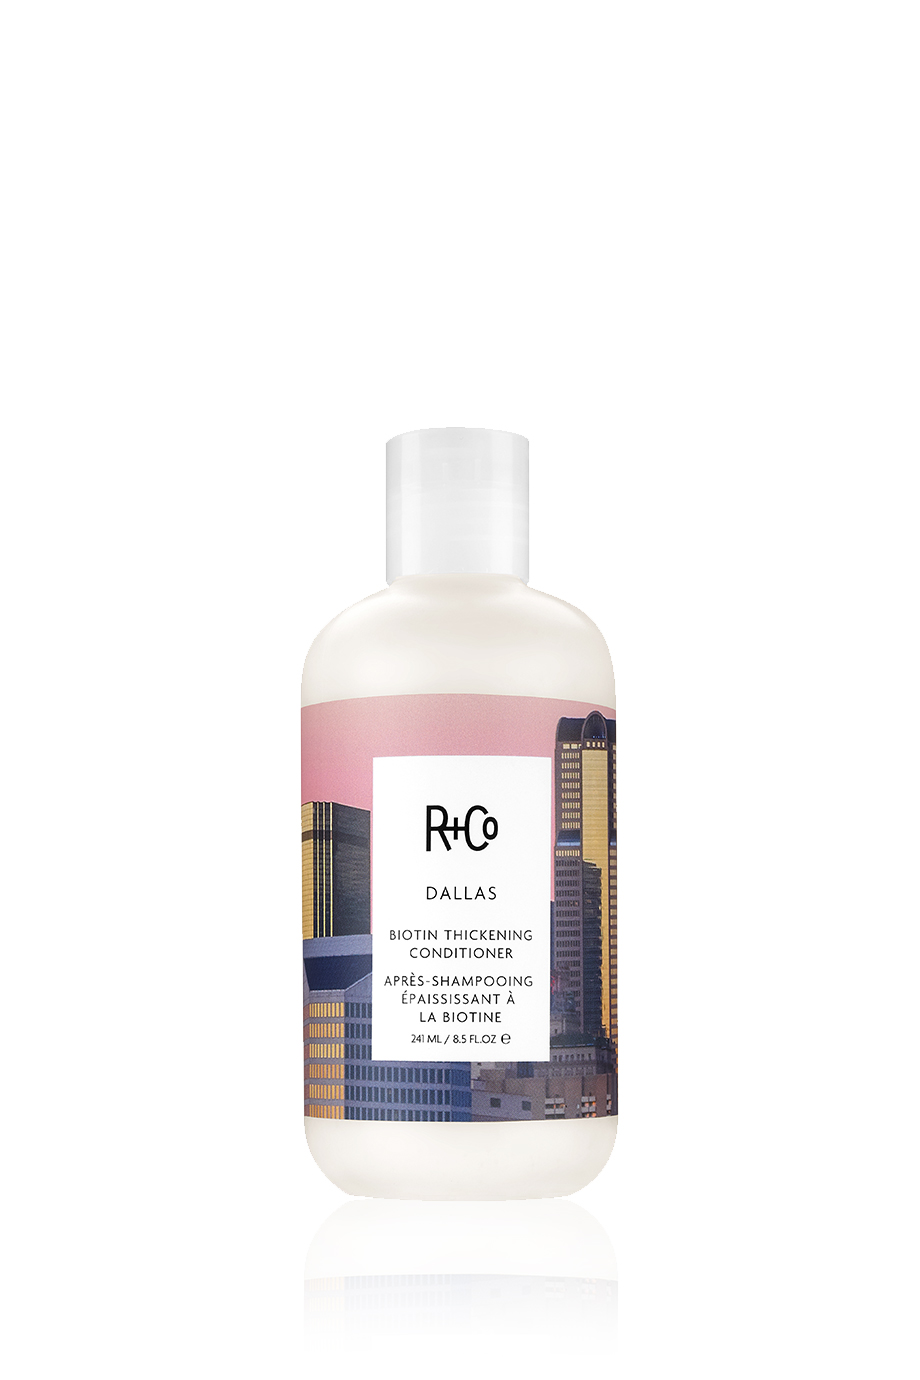 R+Co DALLAS Biotin Thickening Conditioner/ДАЛЛАС кондиционер с биотином для объема 241 мл